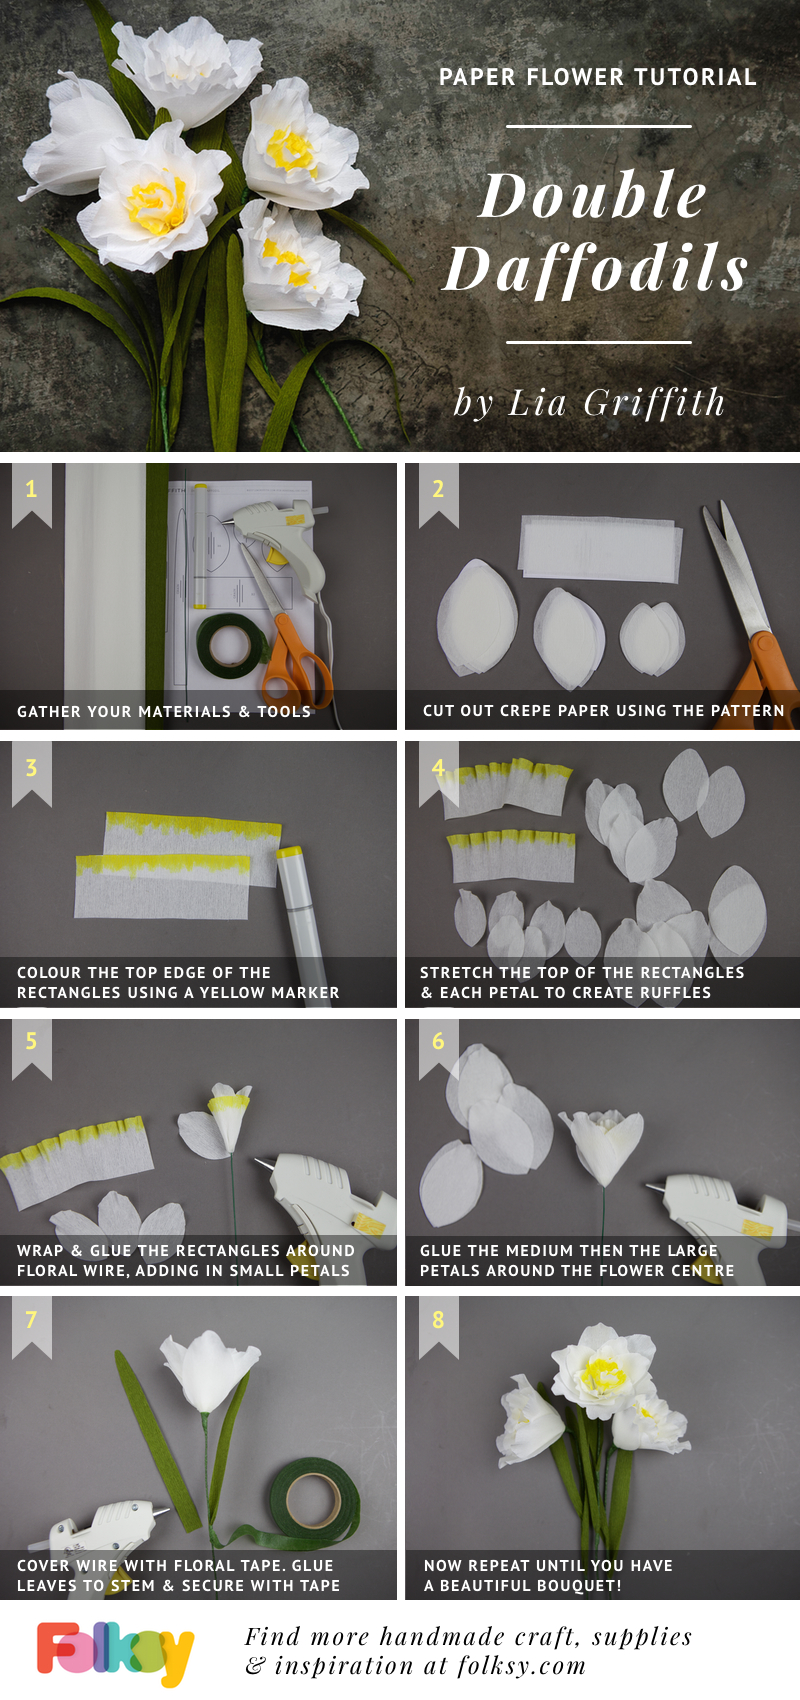 daffodil paper flower tutorial, Lia Griffith, paper flowers, DIT paper flowers,